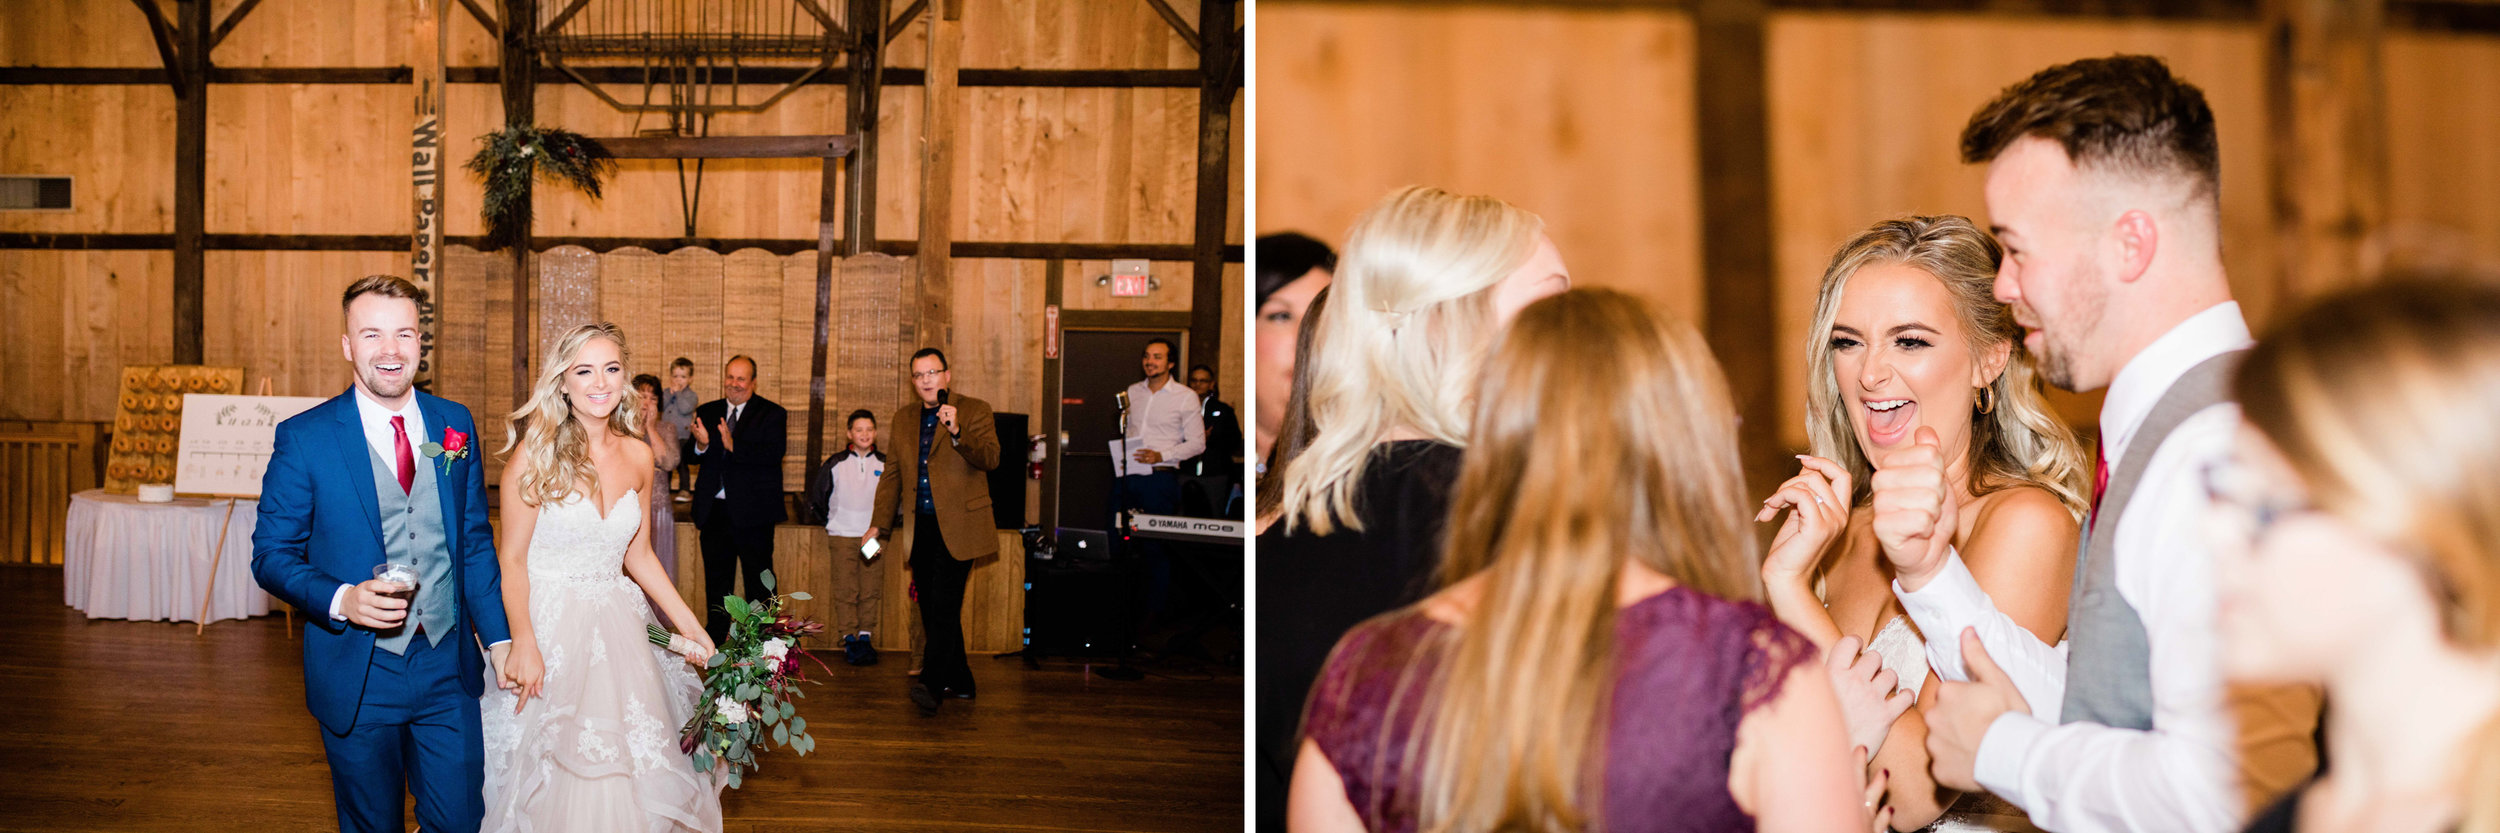 the heartland barn wedding reception.jpg